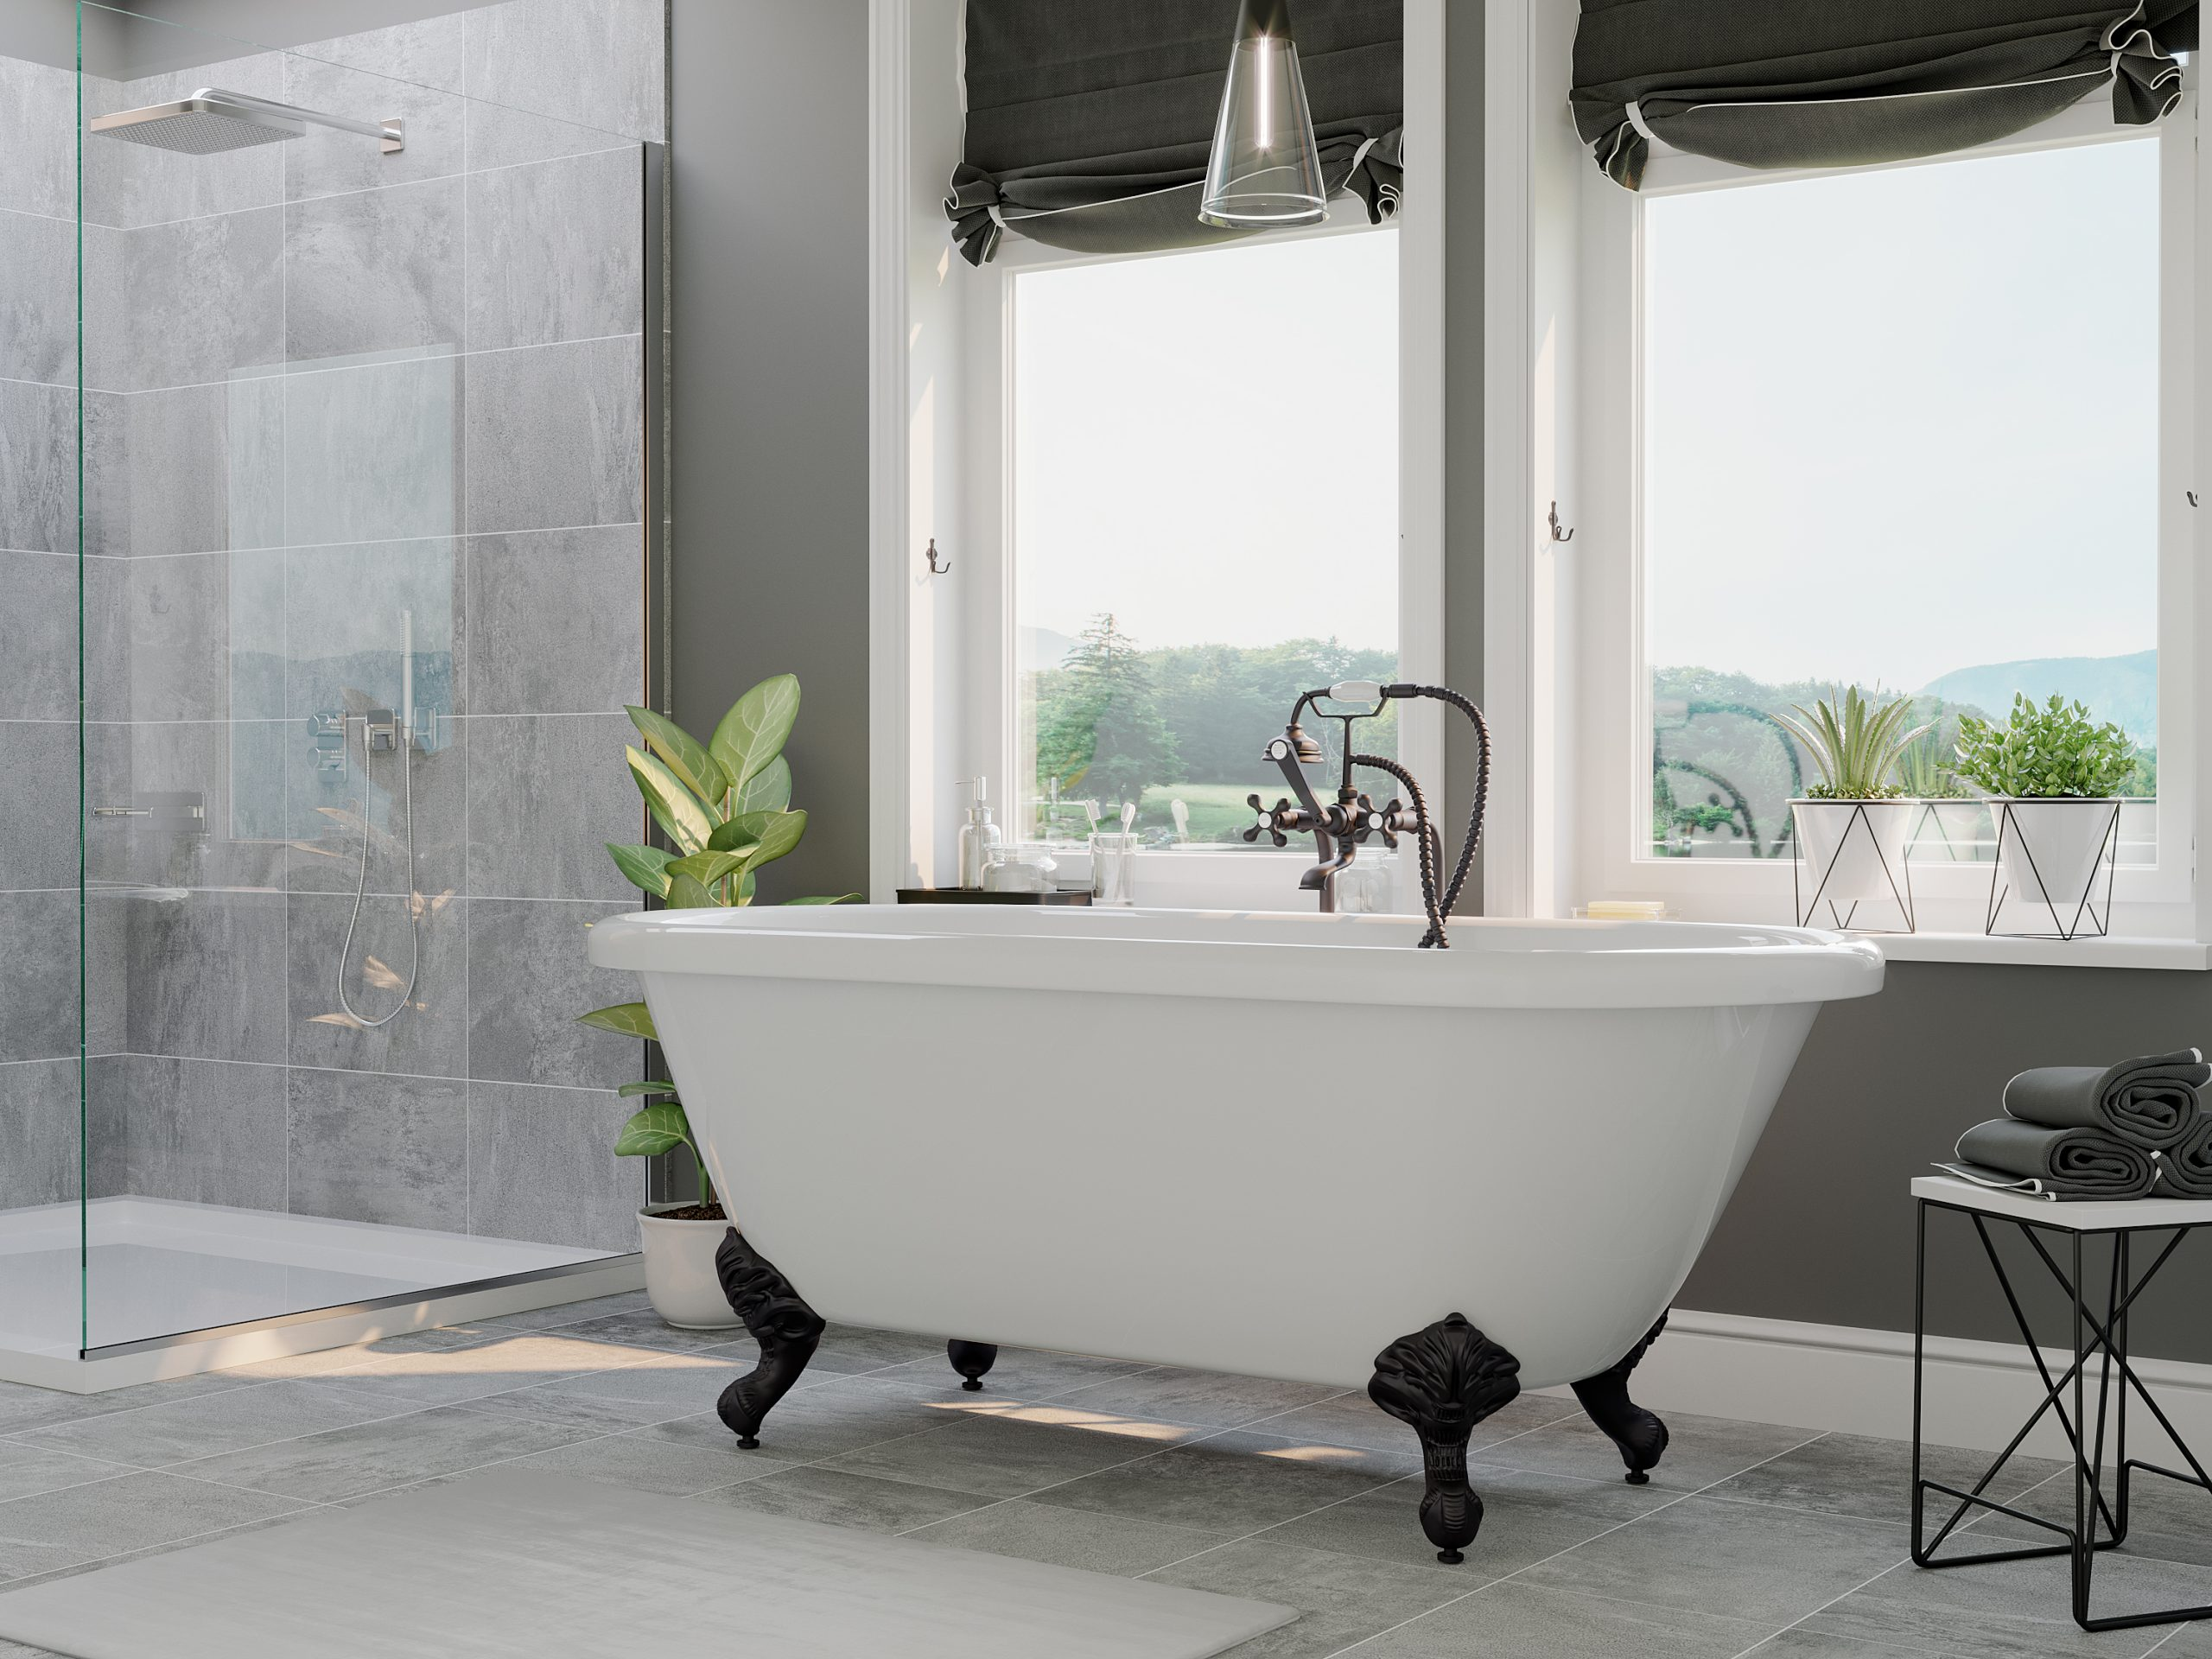 acrylic, double end tub, clawfoot tub, tub and faucet pkg,